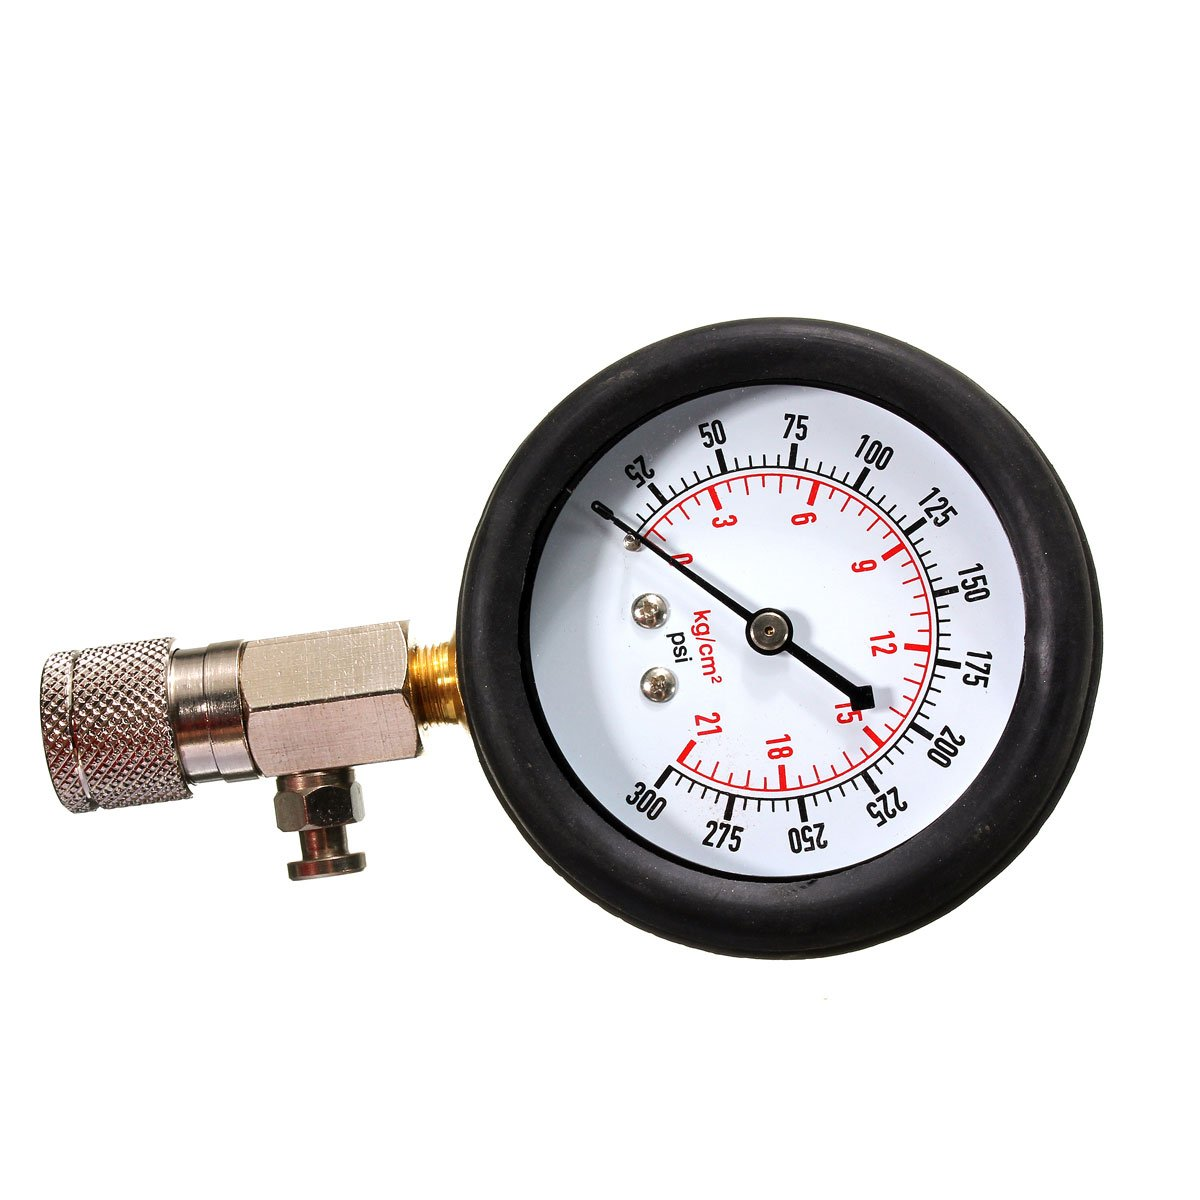 Winnerbe Automotive Petrol Engine Compression Tester Test Kit Gauge Car Motorcycle Tool by Winnerbe (Image #3)